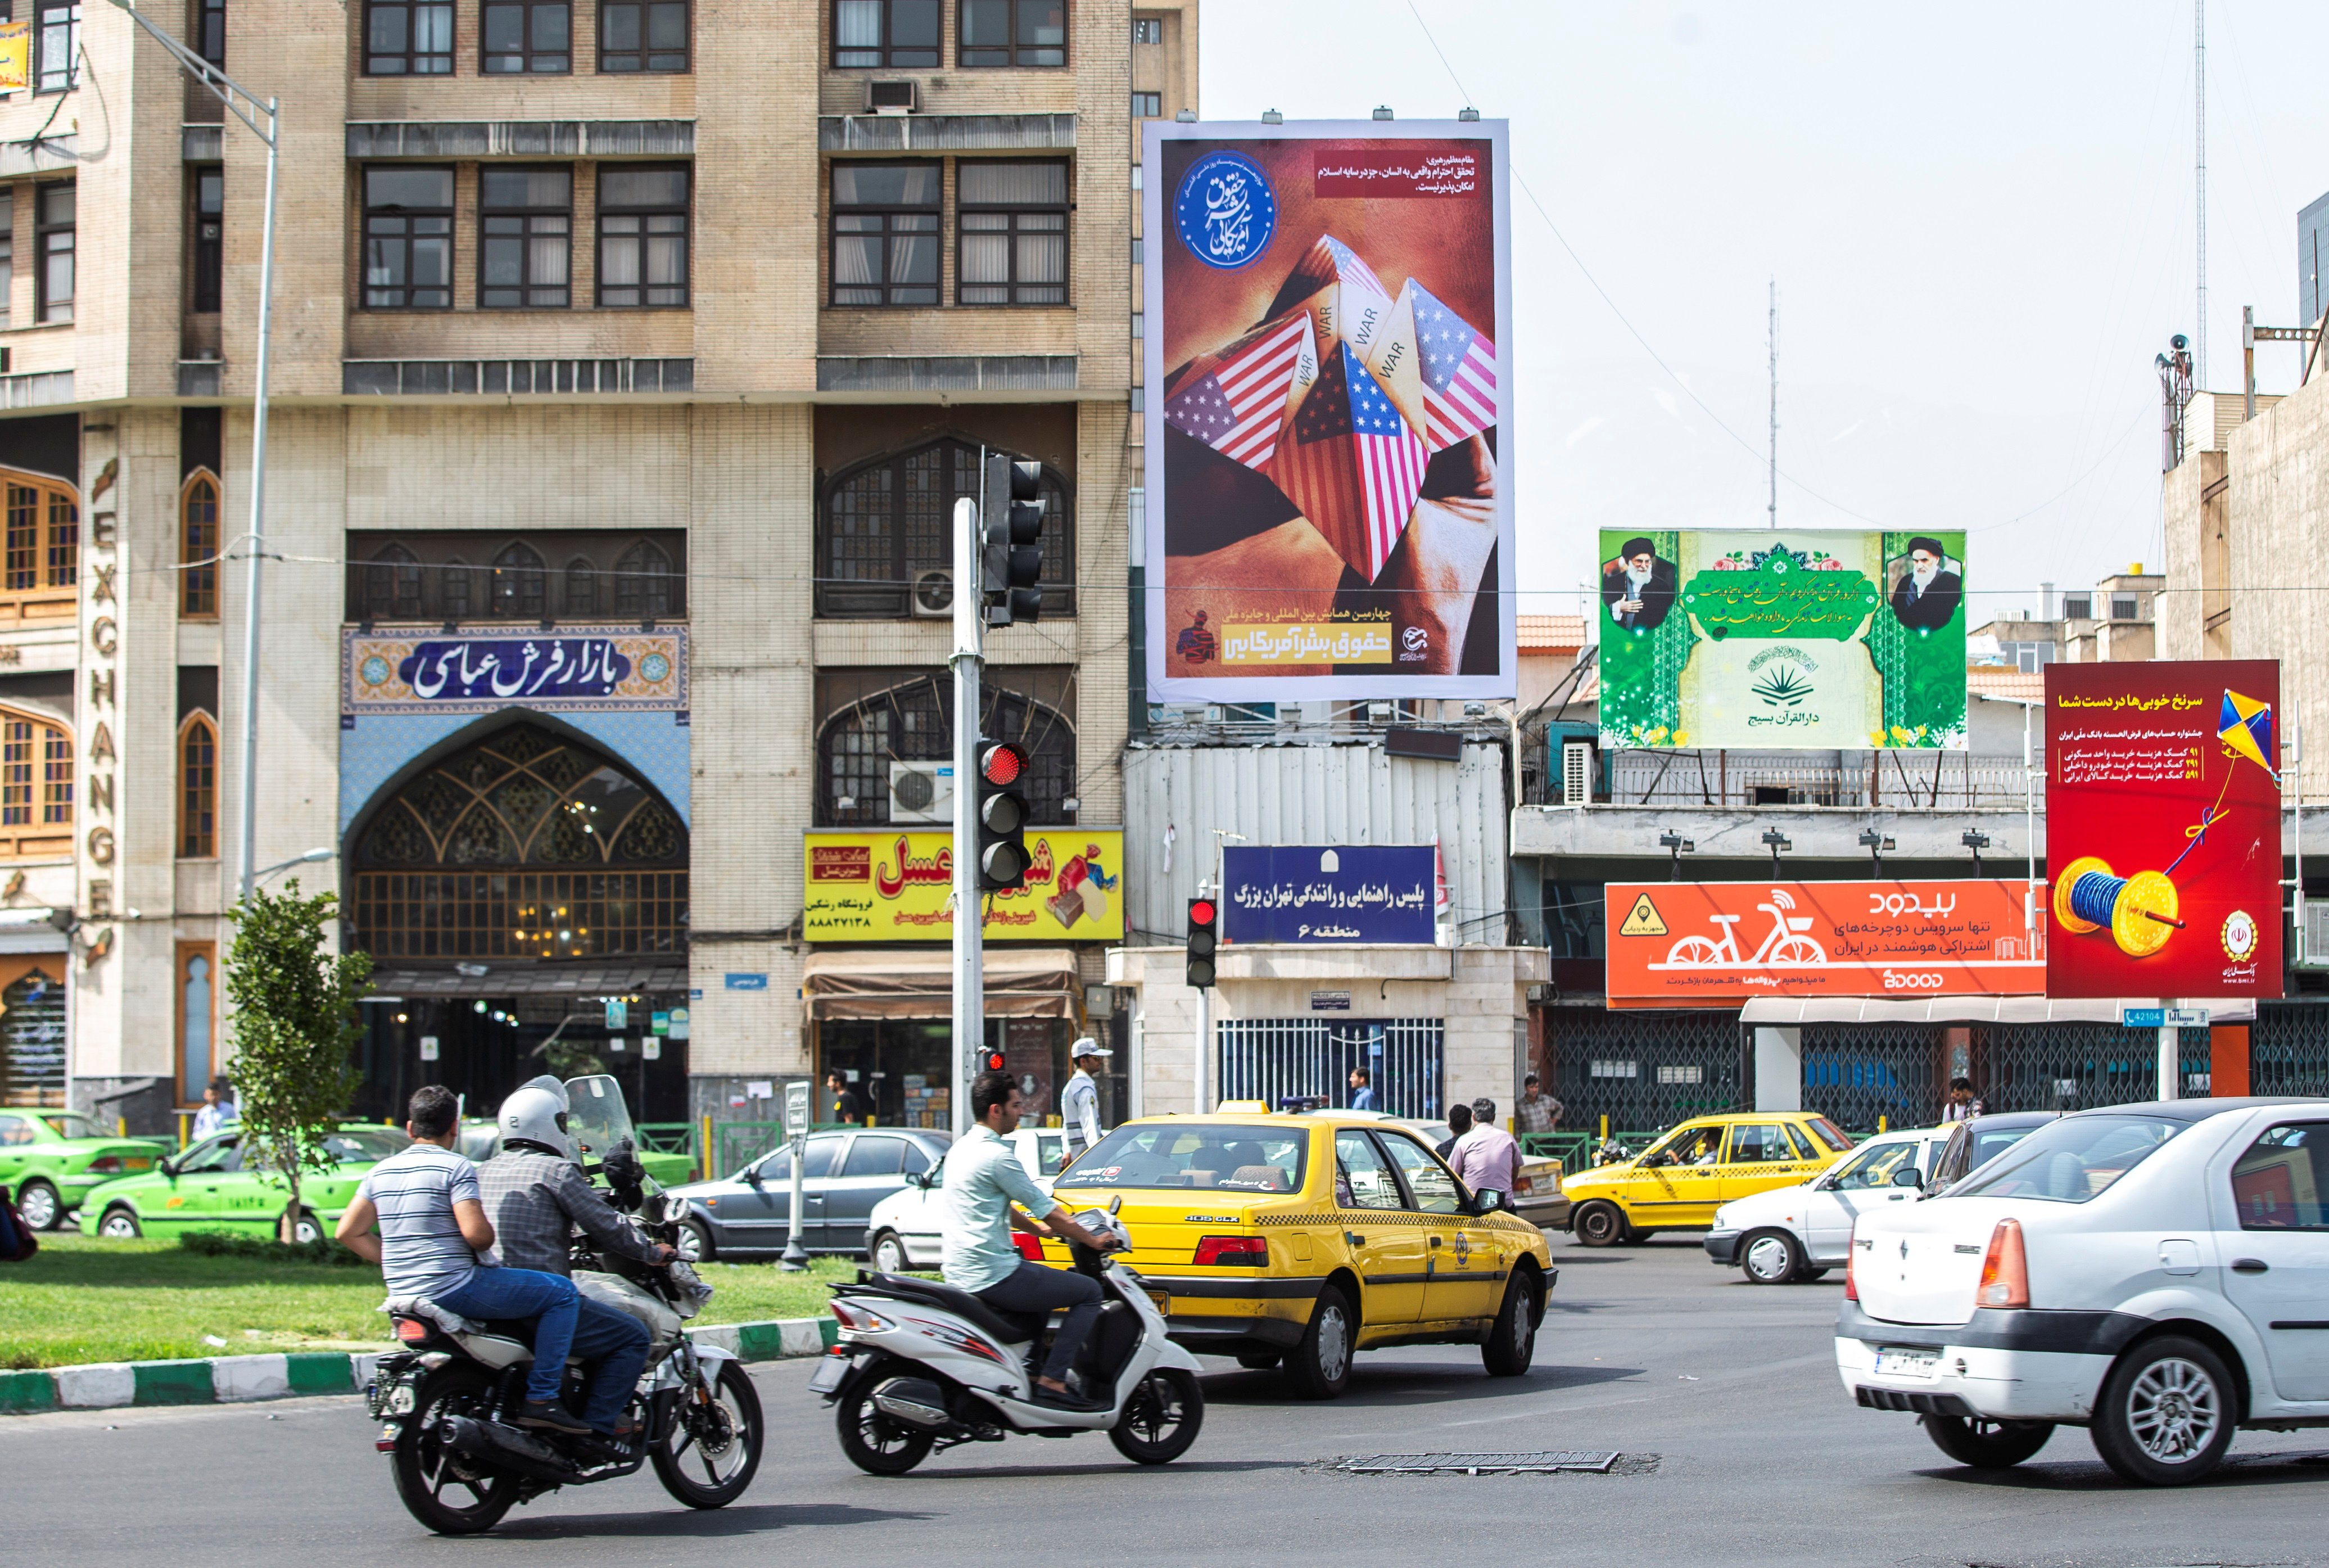 A general view of Ferdowsi Square showing an anti-U.S. mural in Tehran, Iran July 6, 2019. Picture taken July 6, 2019. Nazanin Tabatabaee/ WANA (West Asia News Agency) via REUTERS.